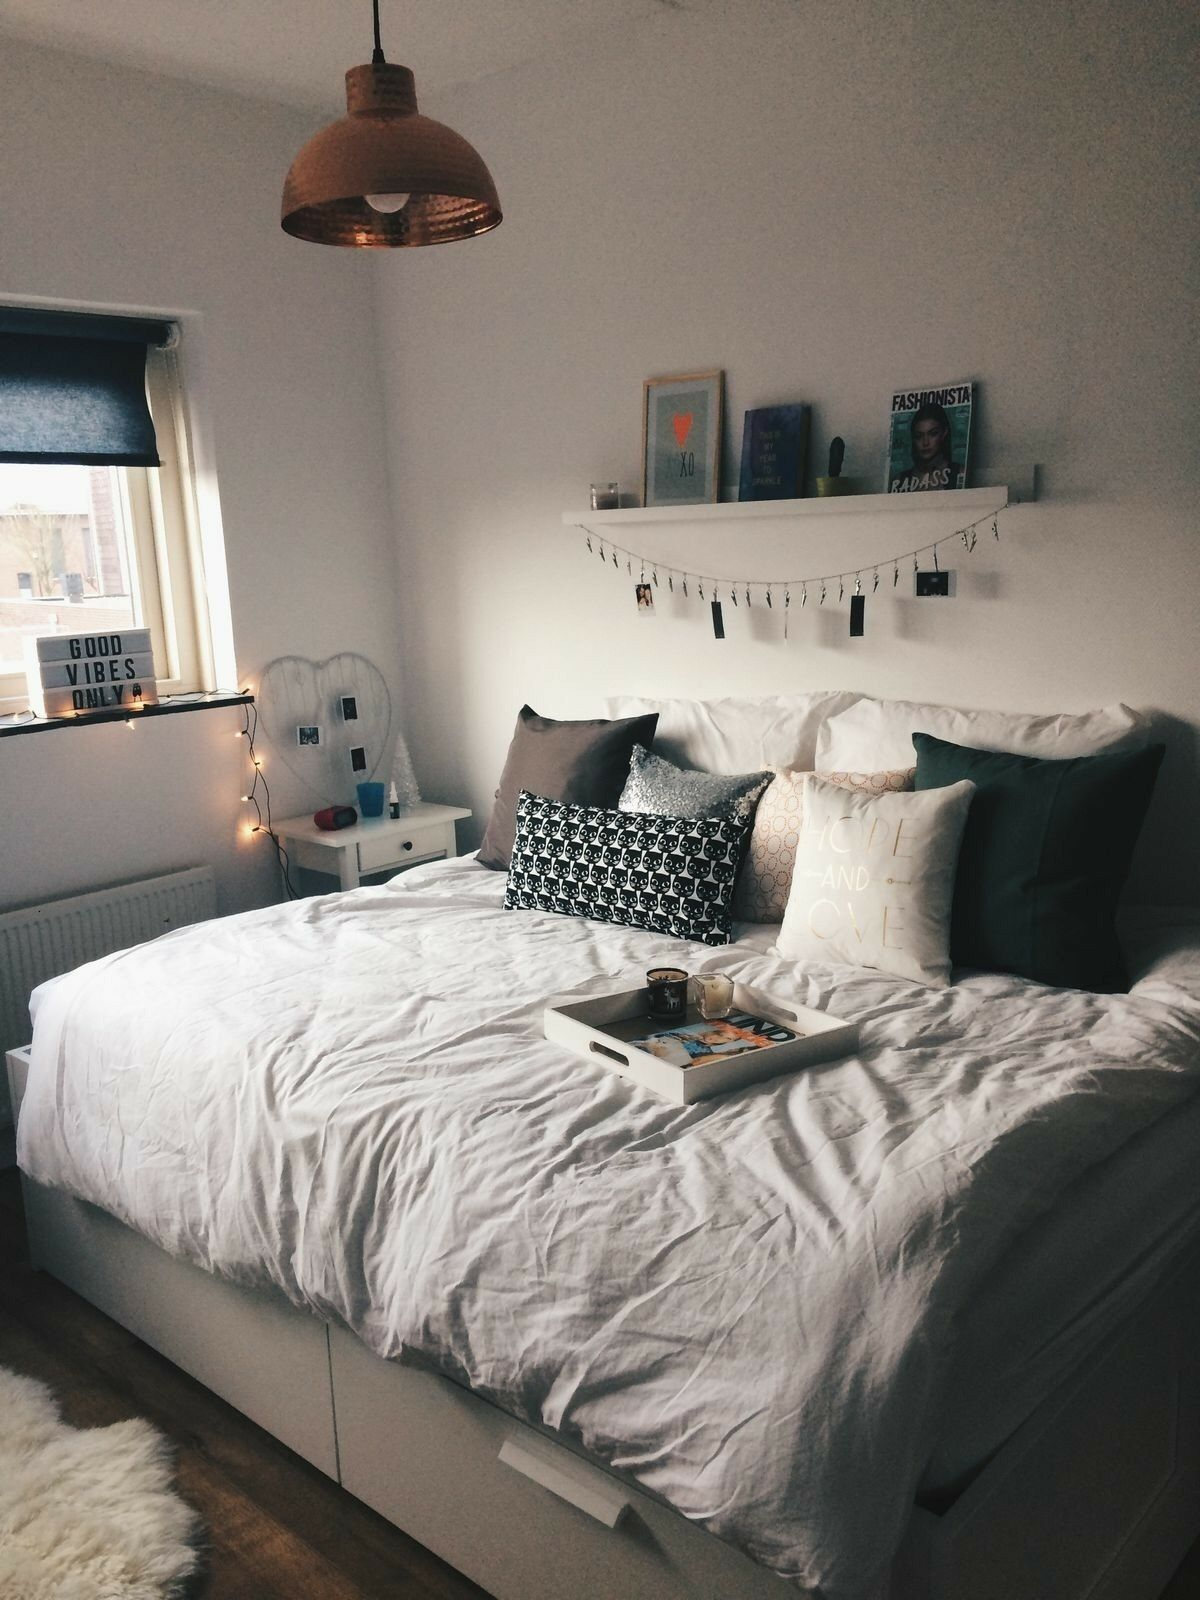 Pin by Katerina_P on Mood2 in 2019 | Room decor, Dorm room ...